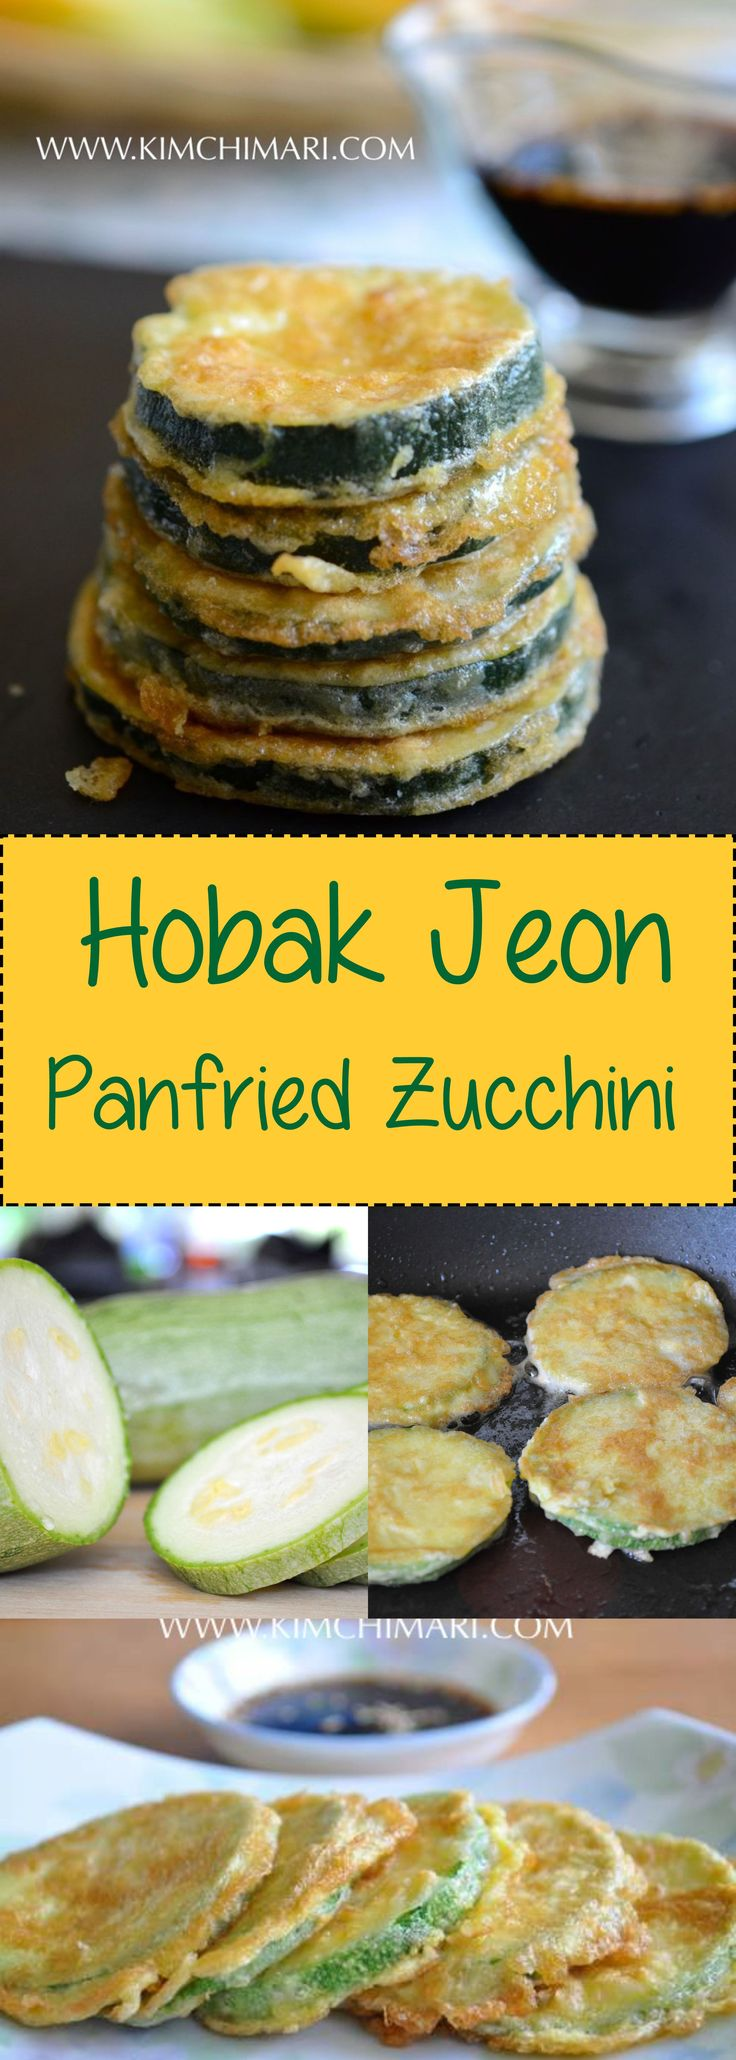 Pan Fried Grey Zucchni Squash is simple and delicious. Salting the squash ahead of frying makes all the difference!  | Kimchimari.com